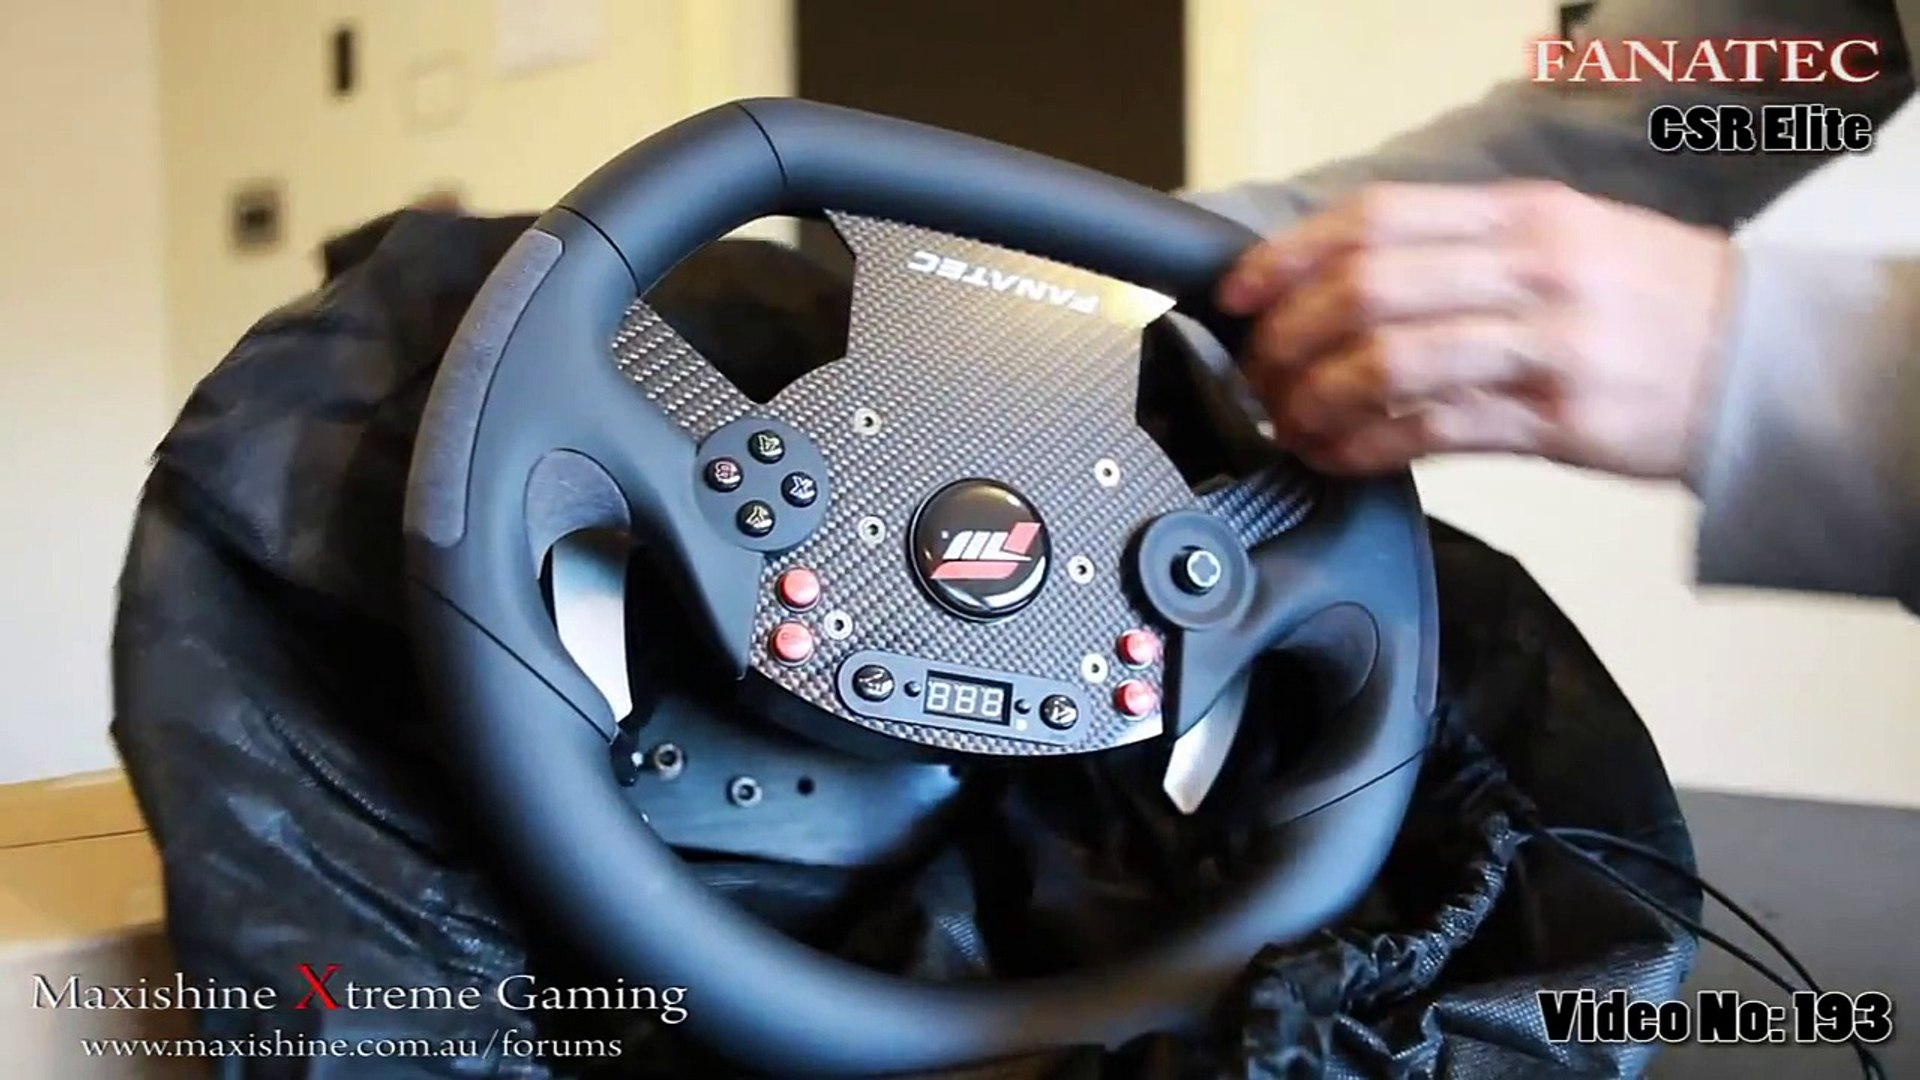 Fanatec CSR Elite Maxishine Video